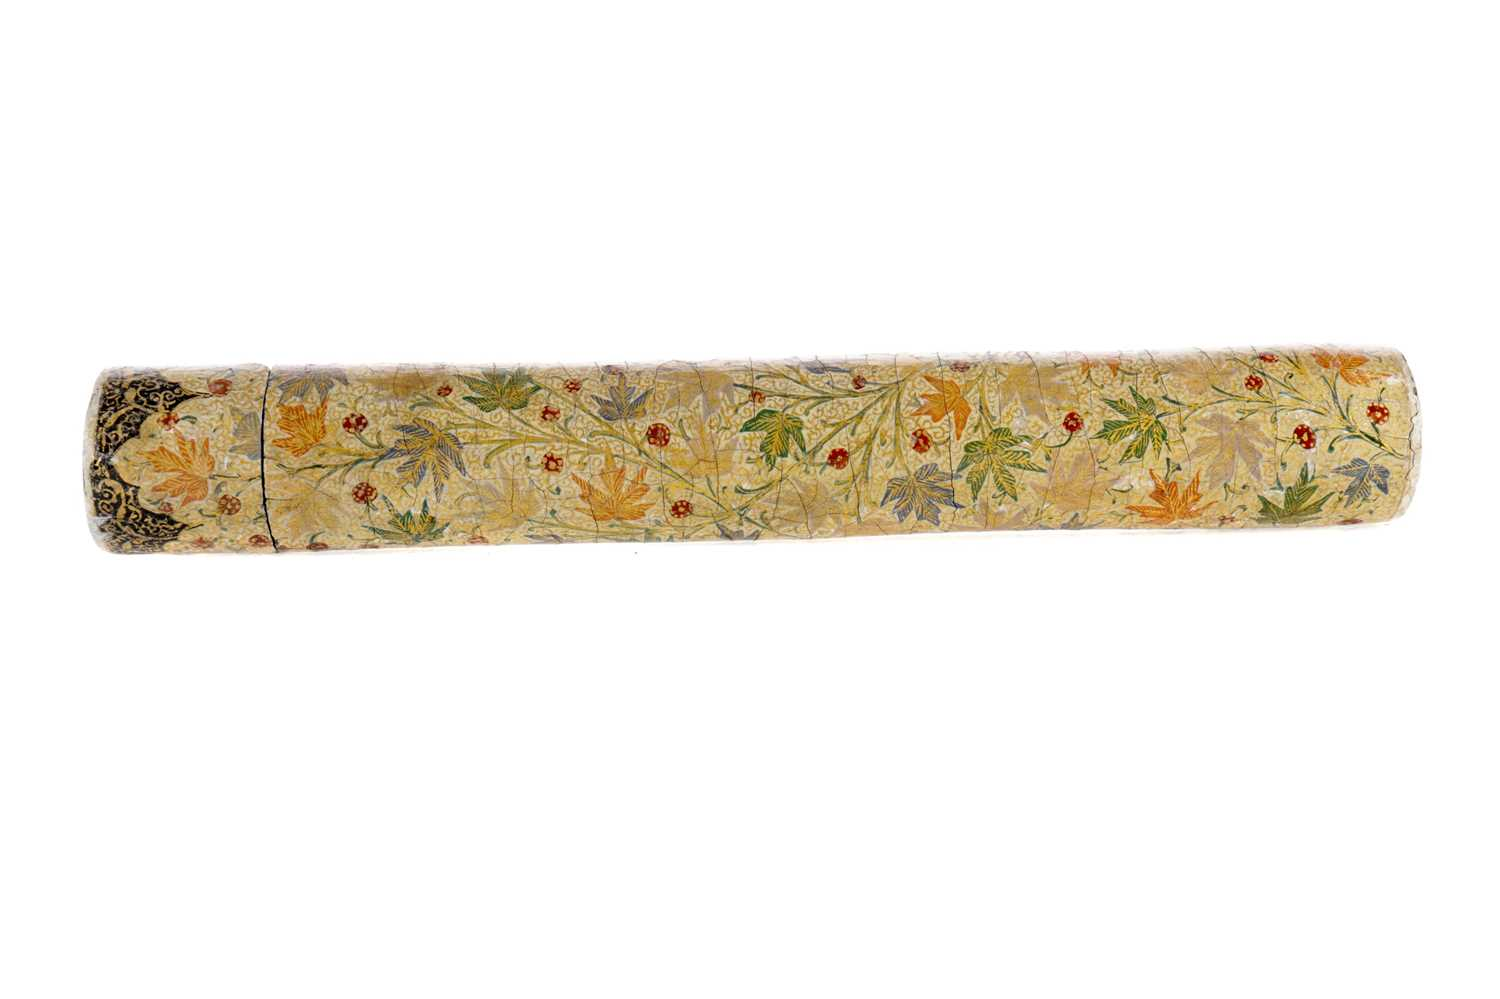 Lot 756 - AN EASTERN PAINTED METAL SCROLL HOLDER